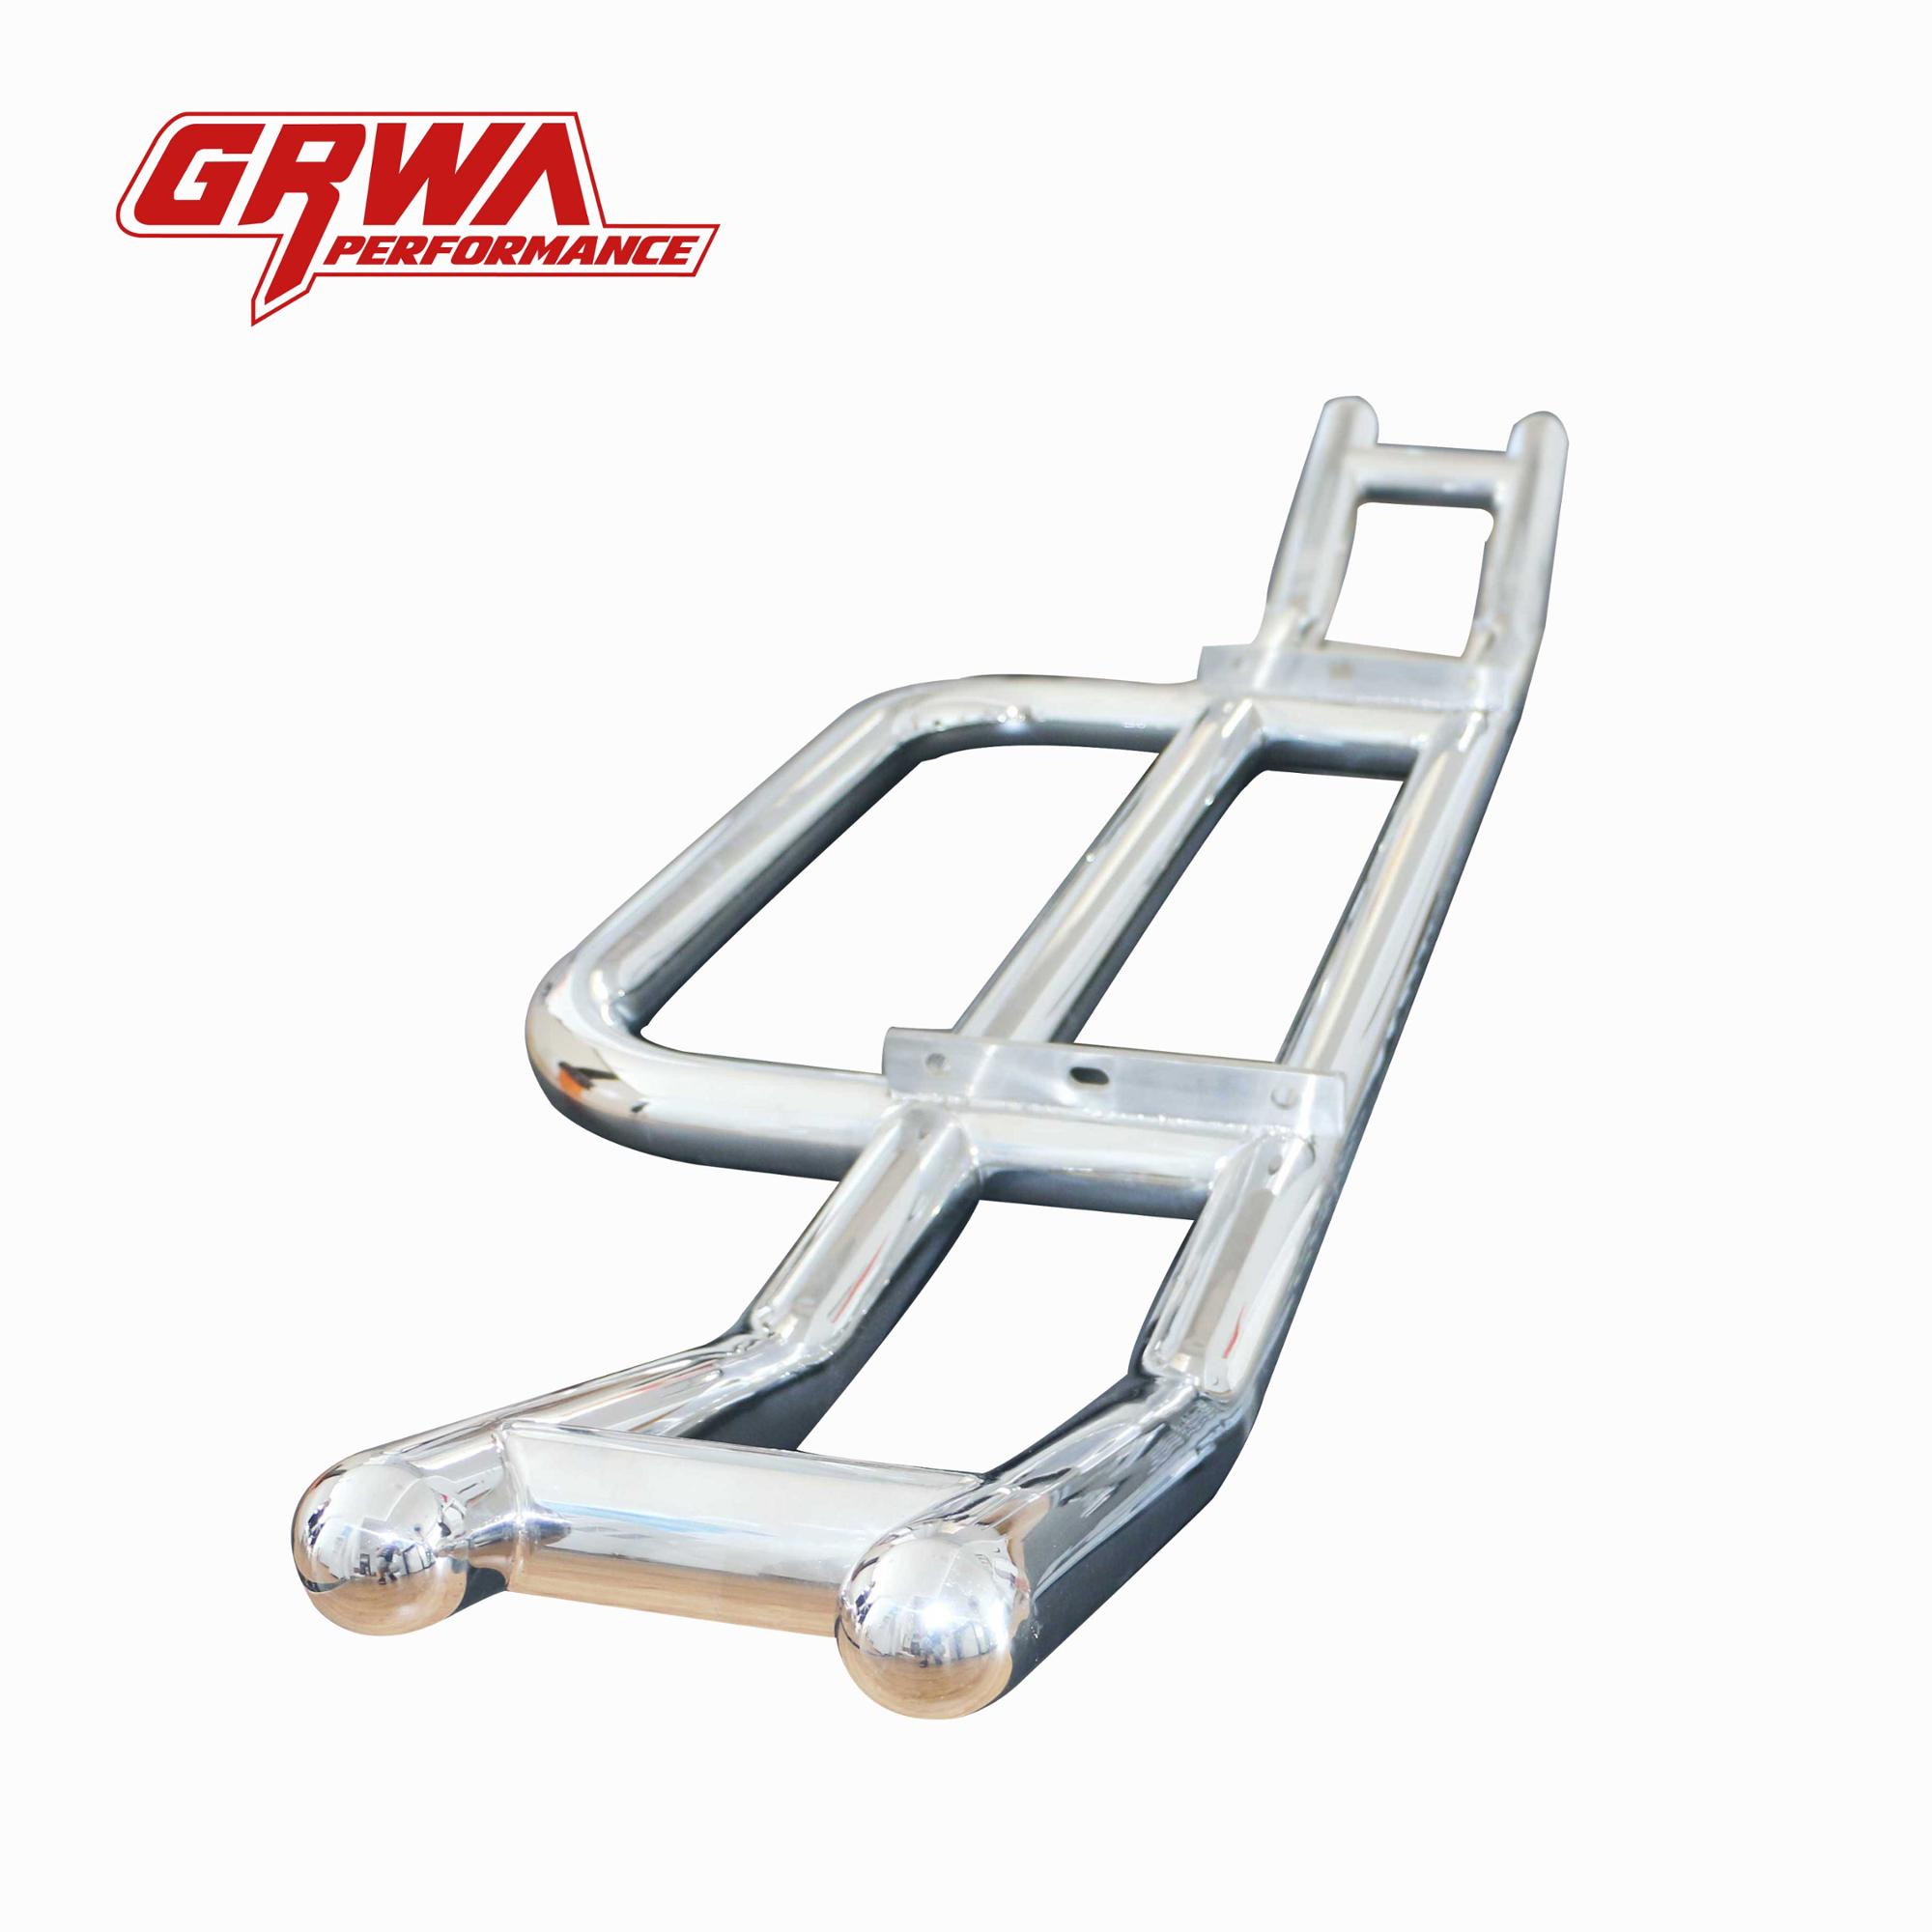 China best quality GRWA rear bumper guard